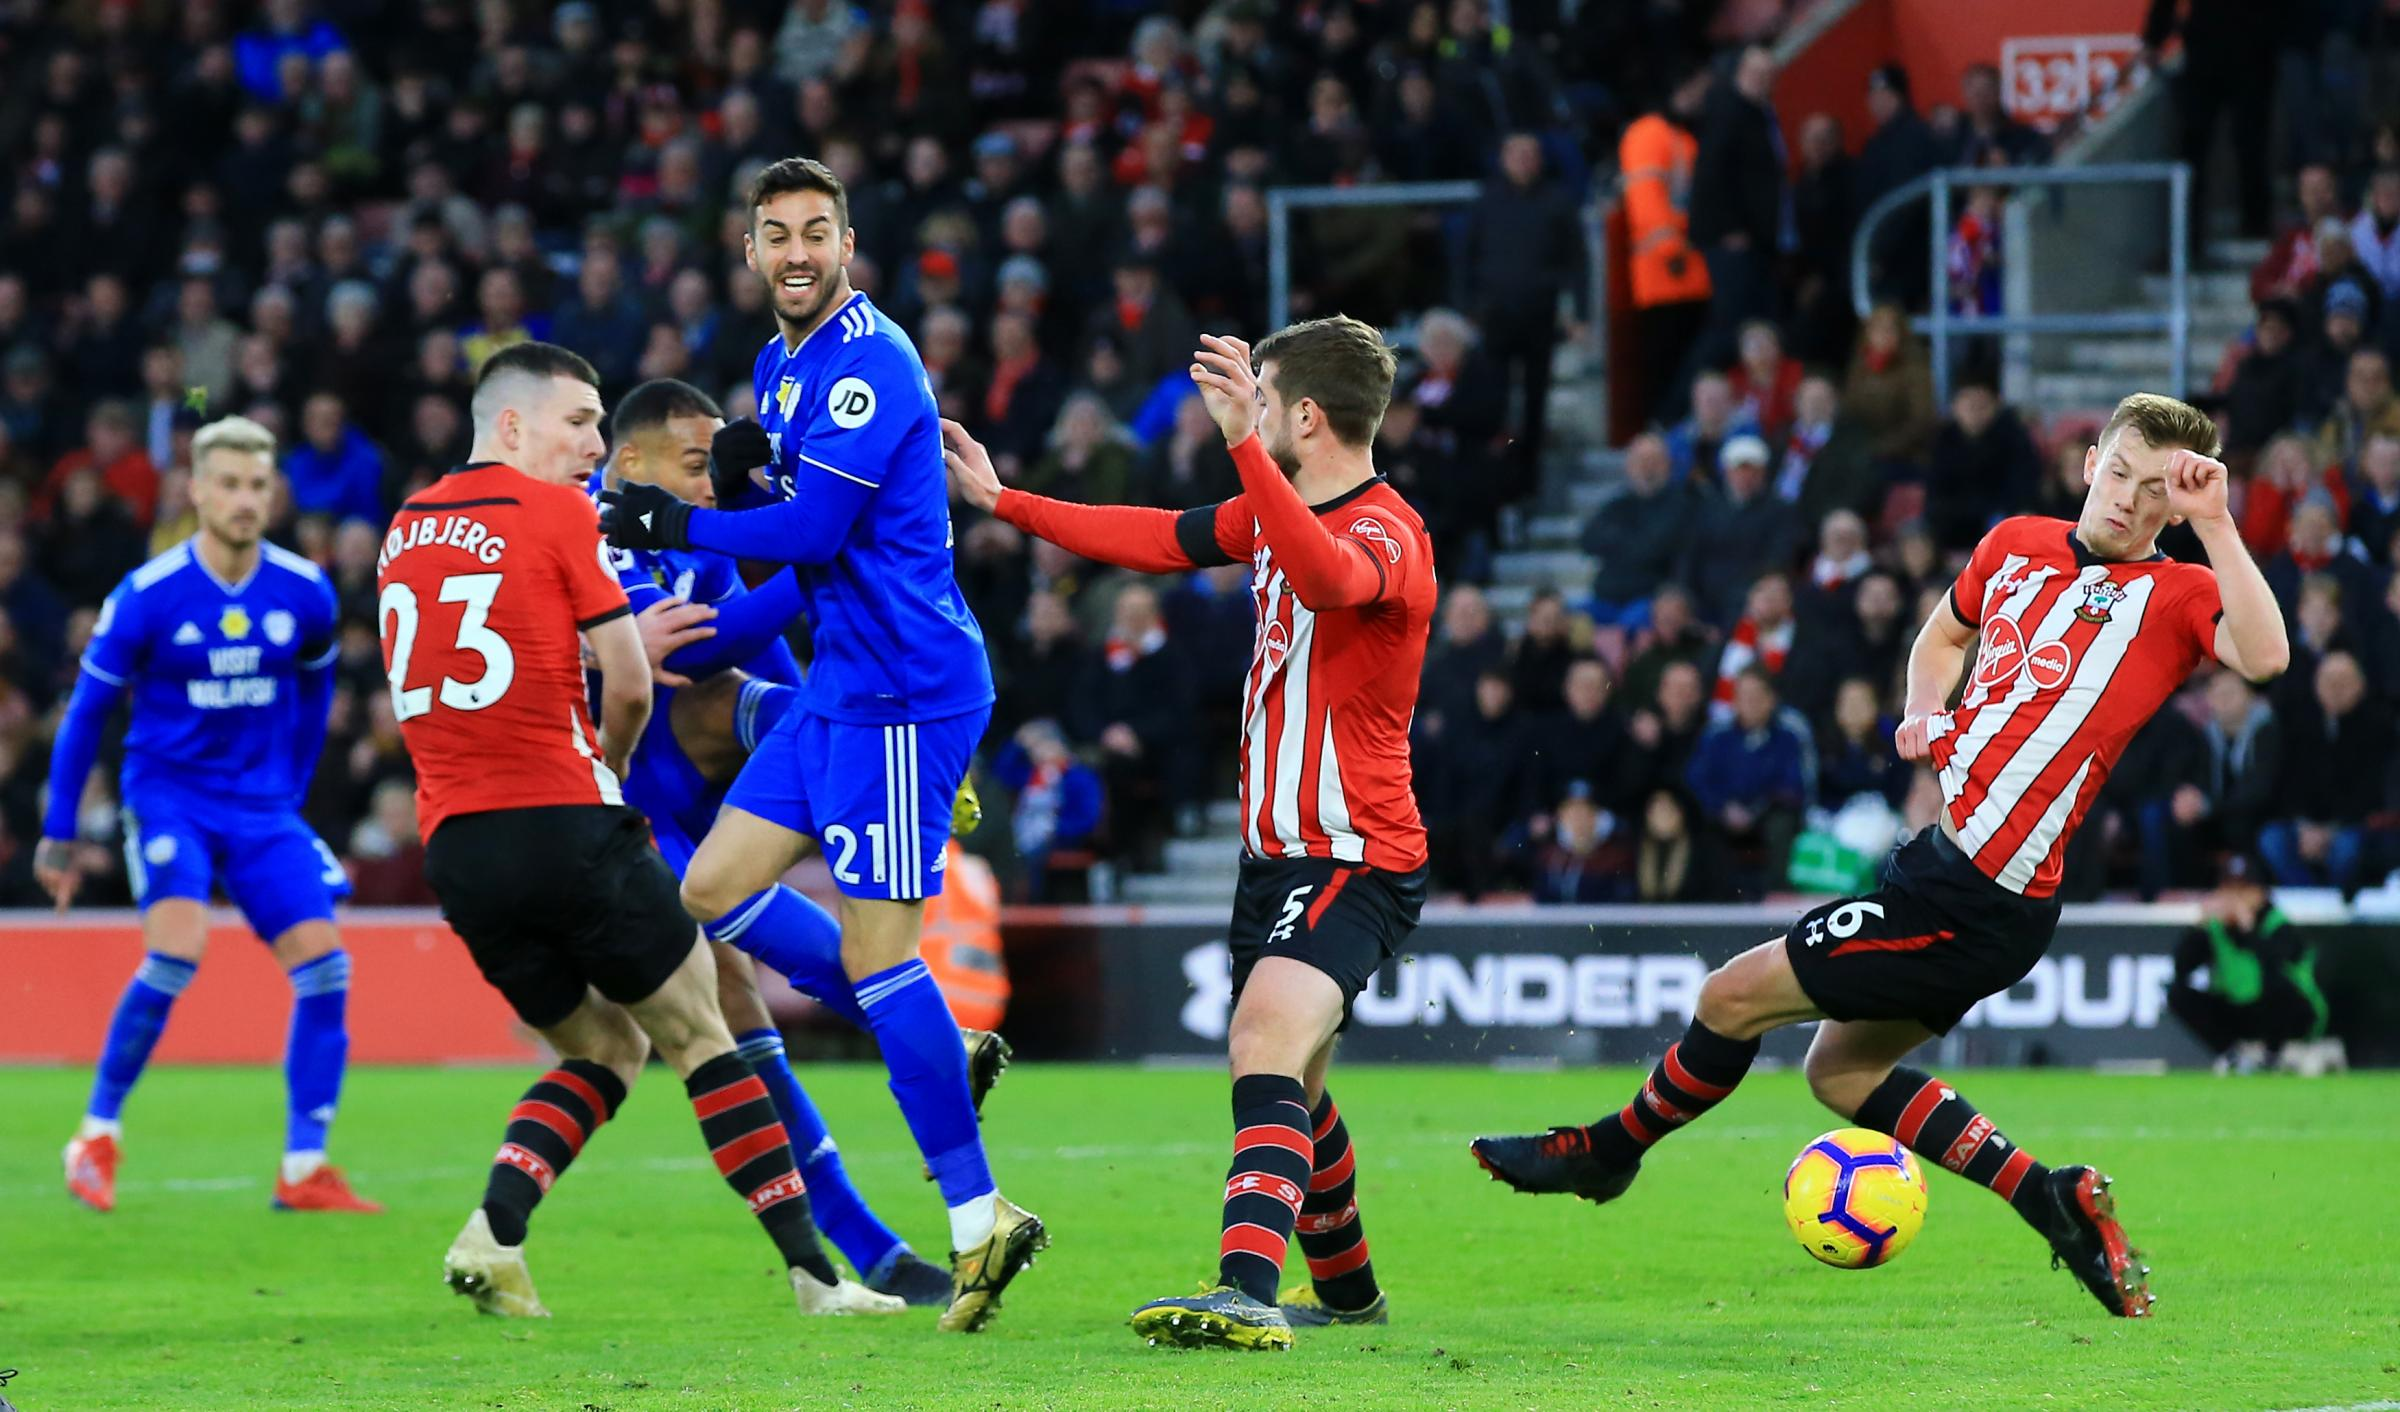 Saints v Cardiff: Five things we learned